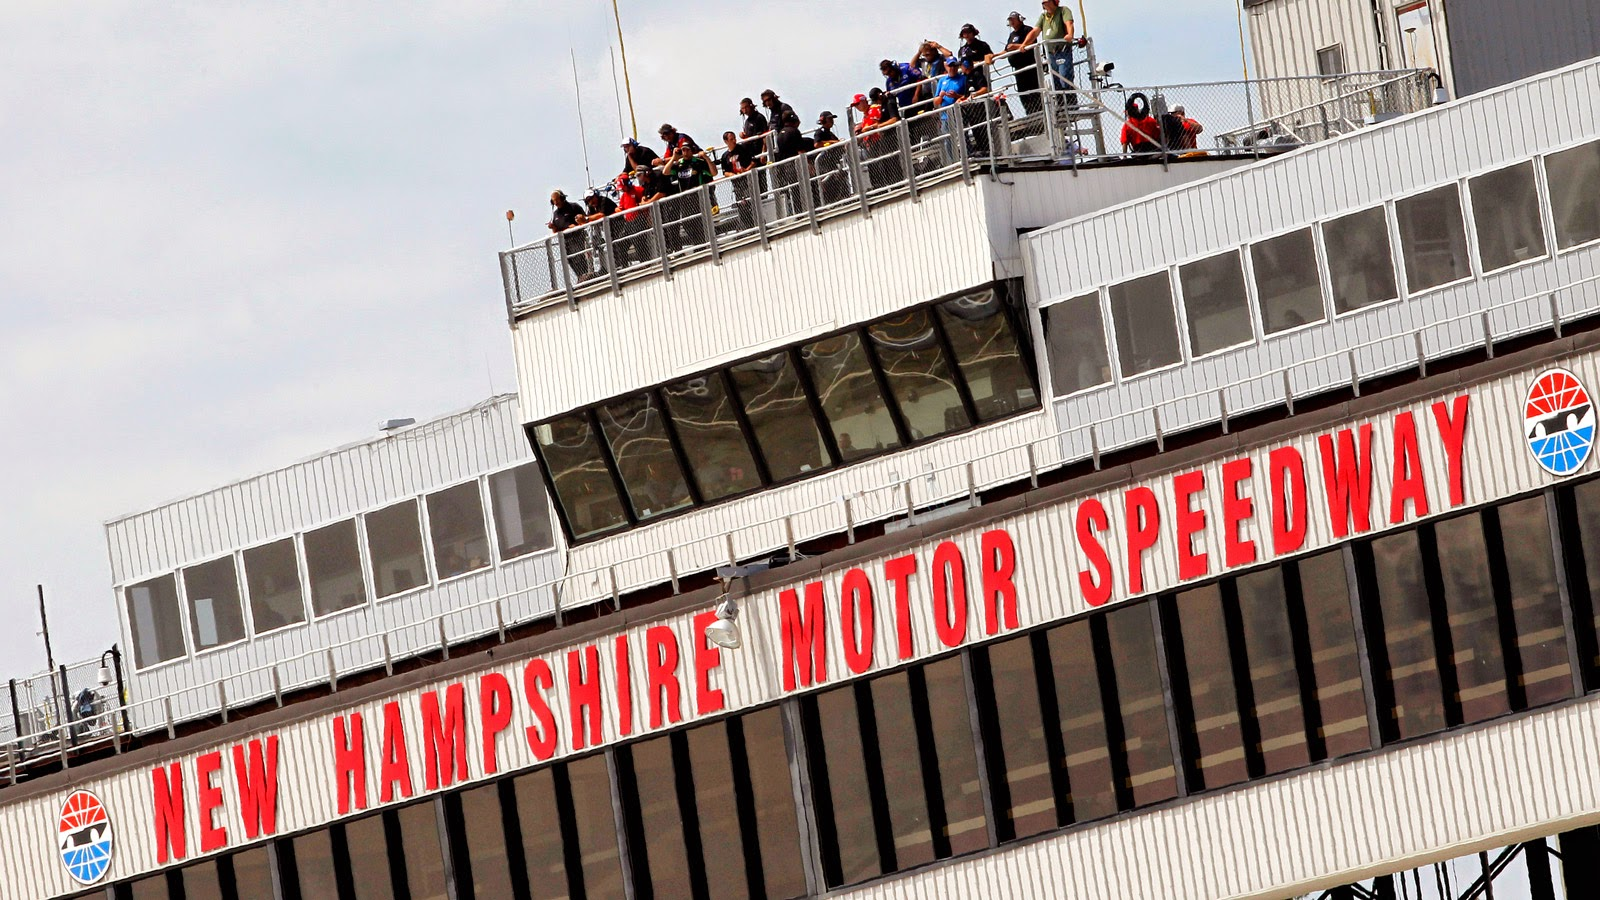 Behind the wall 2014 new hampshire motor speedway entry list for New hampshire motor speed way